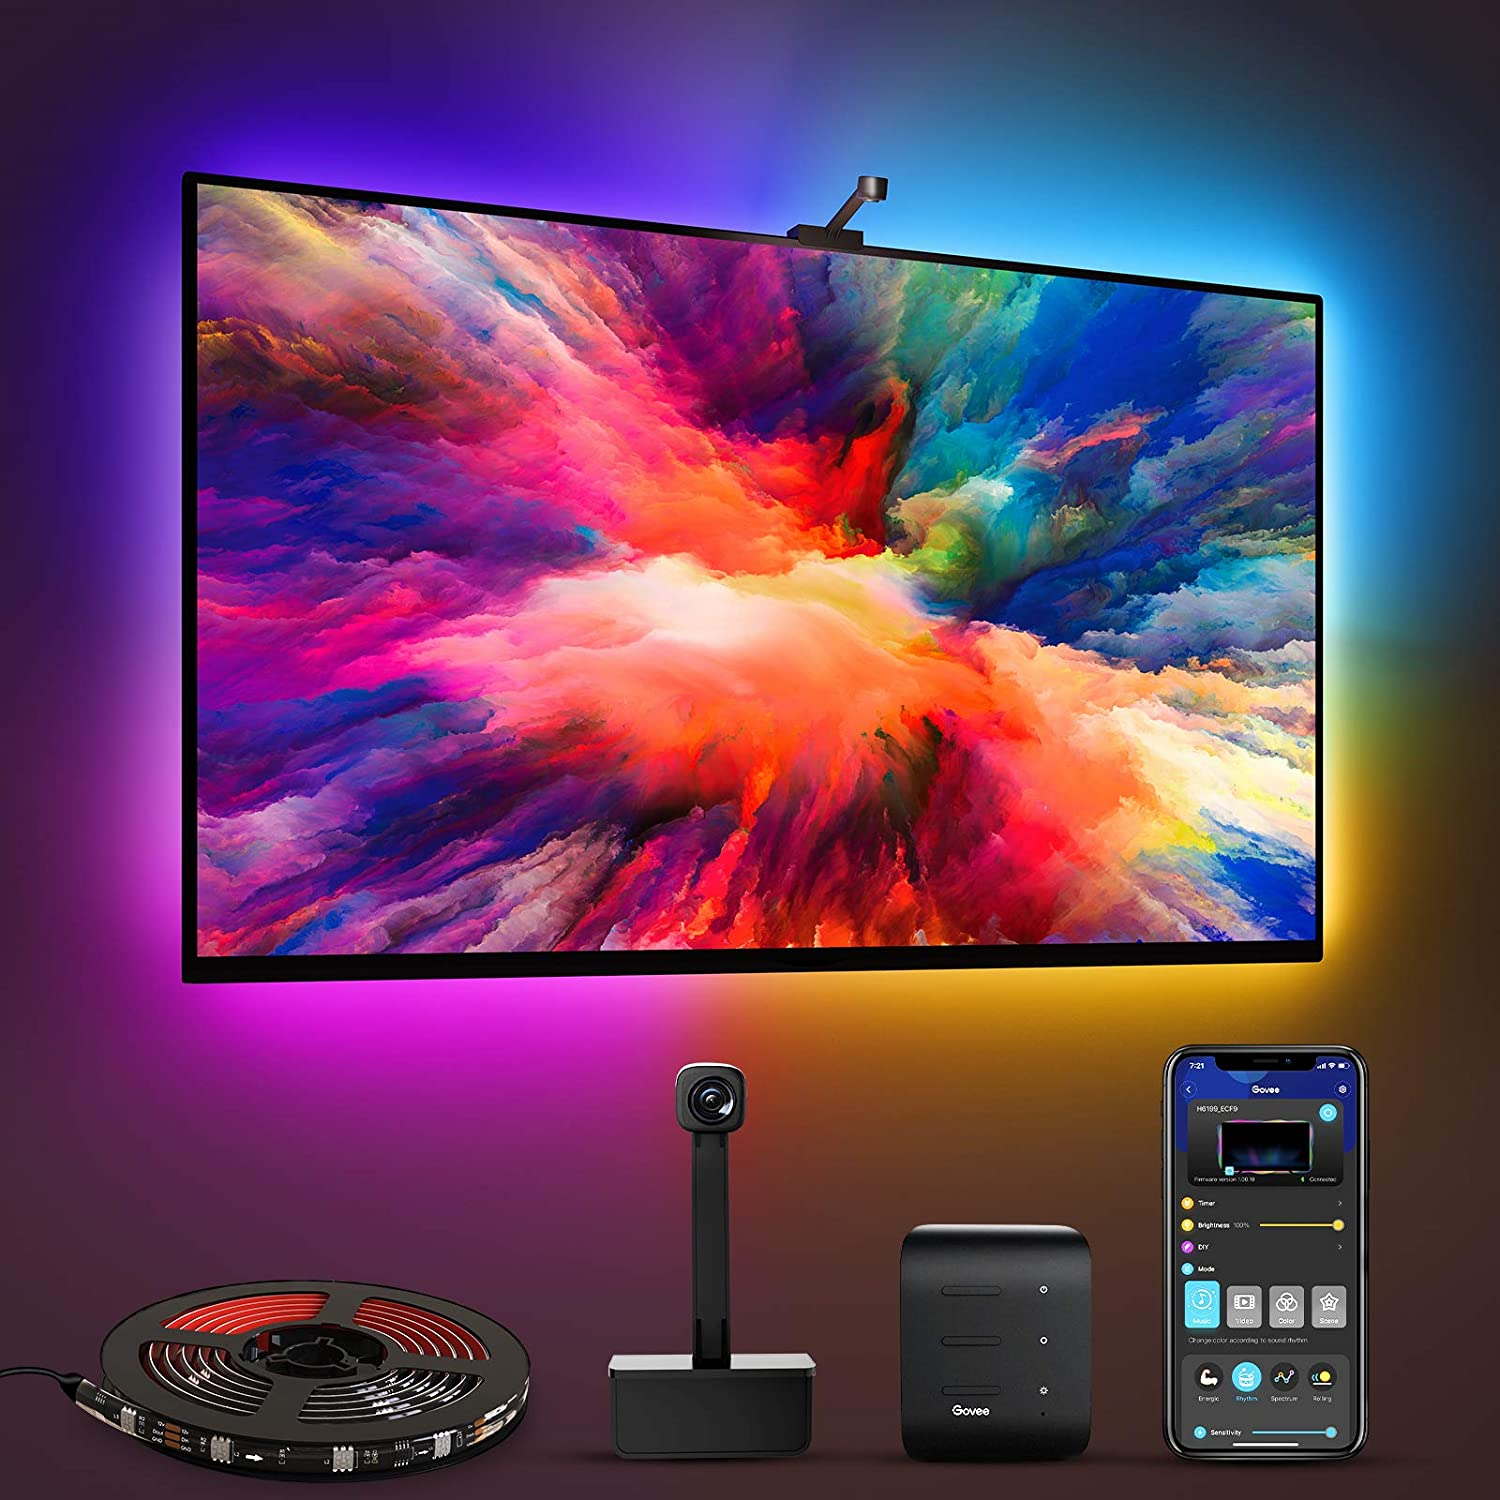 Govee Immersion WiFi TV LED Backlights with Camera, RGBIC Ambient TV Lighting for 55-65 inch TVs PC, Works with Alexa & Google Assistant, App Control, Lights and Music Sync, Adapter